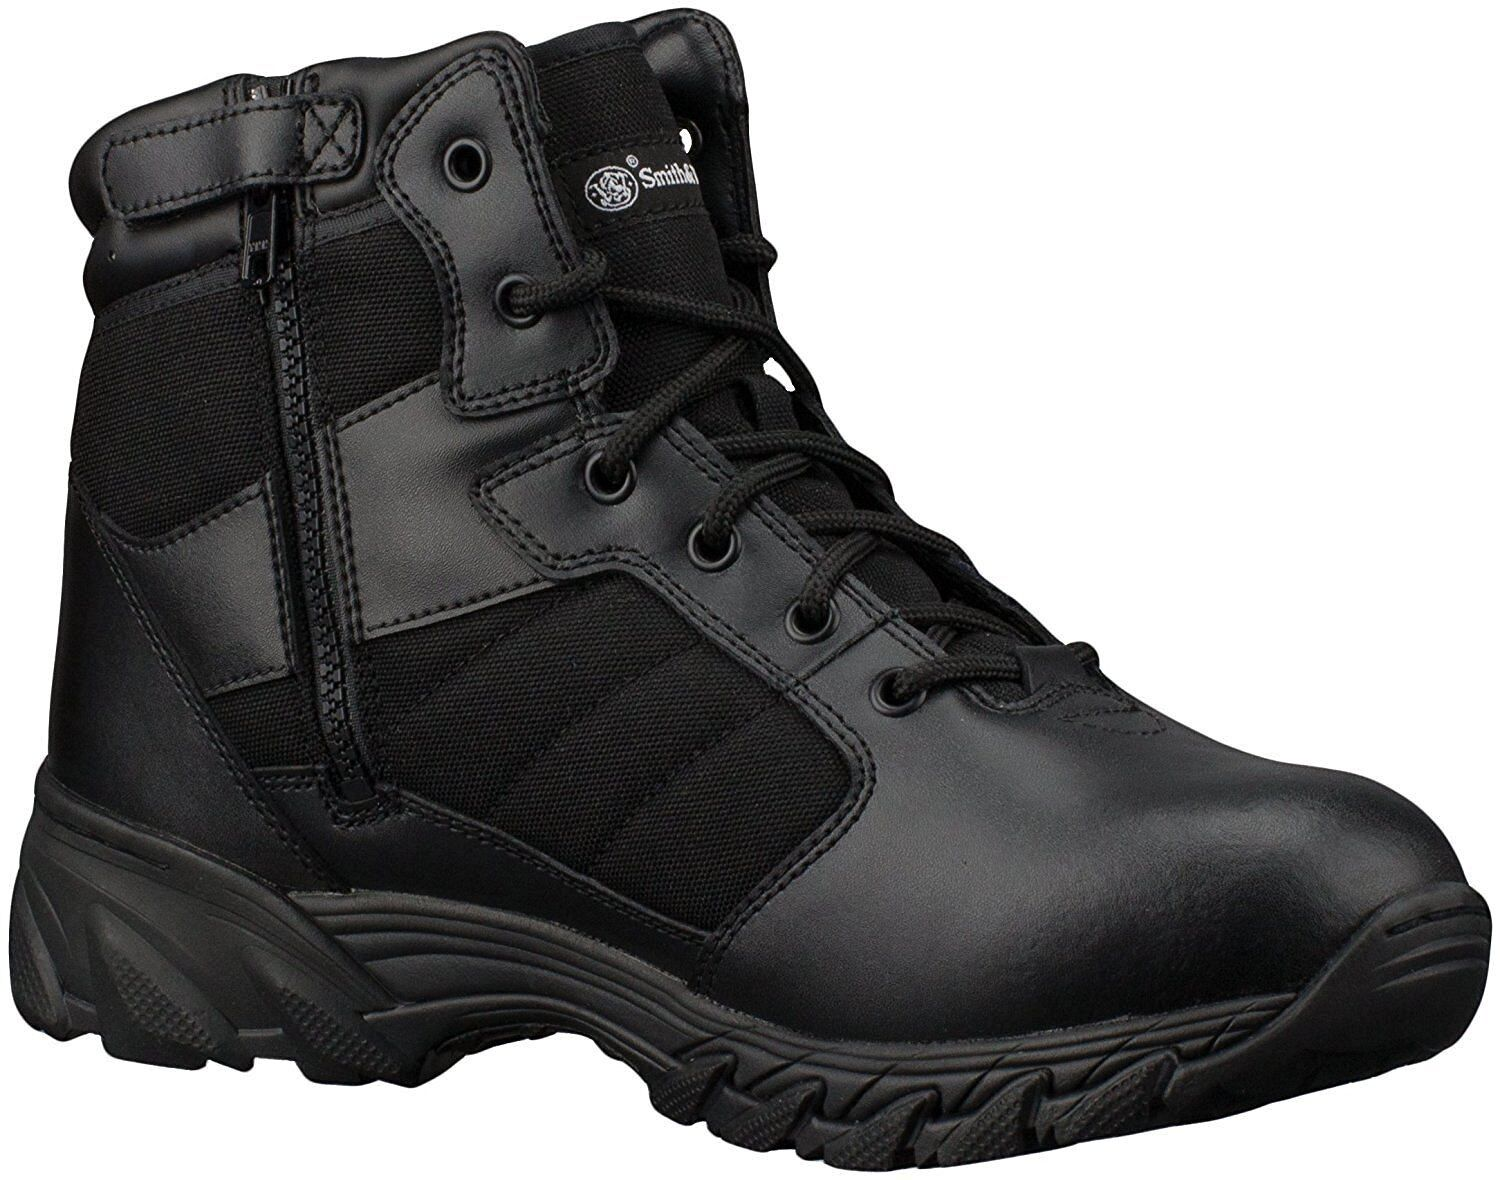 Smith & Wesson Breach 2.0 Men's Tactical Side-Zip 6  Boots